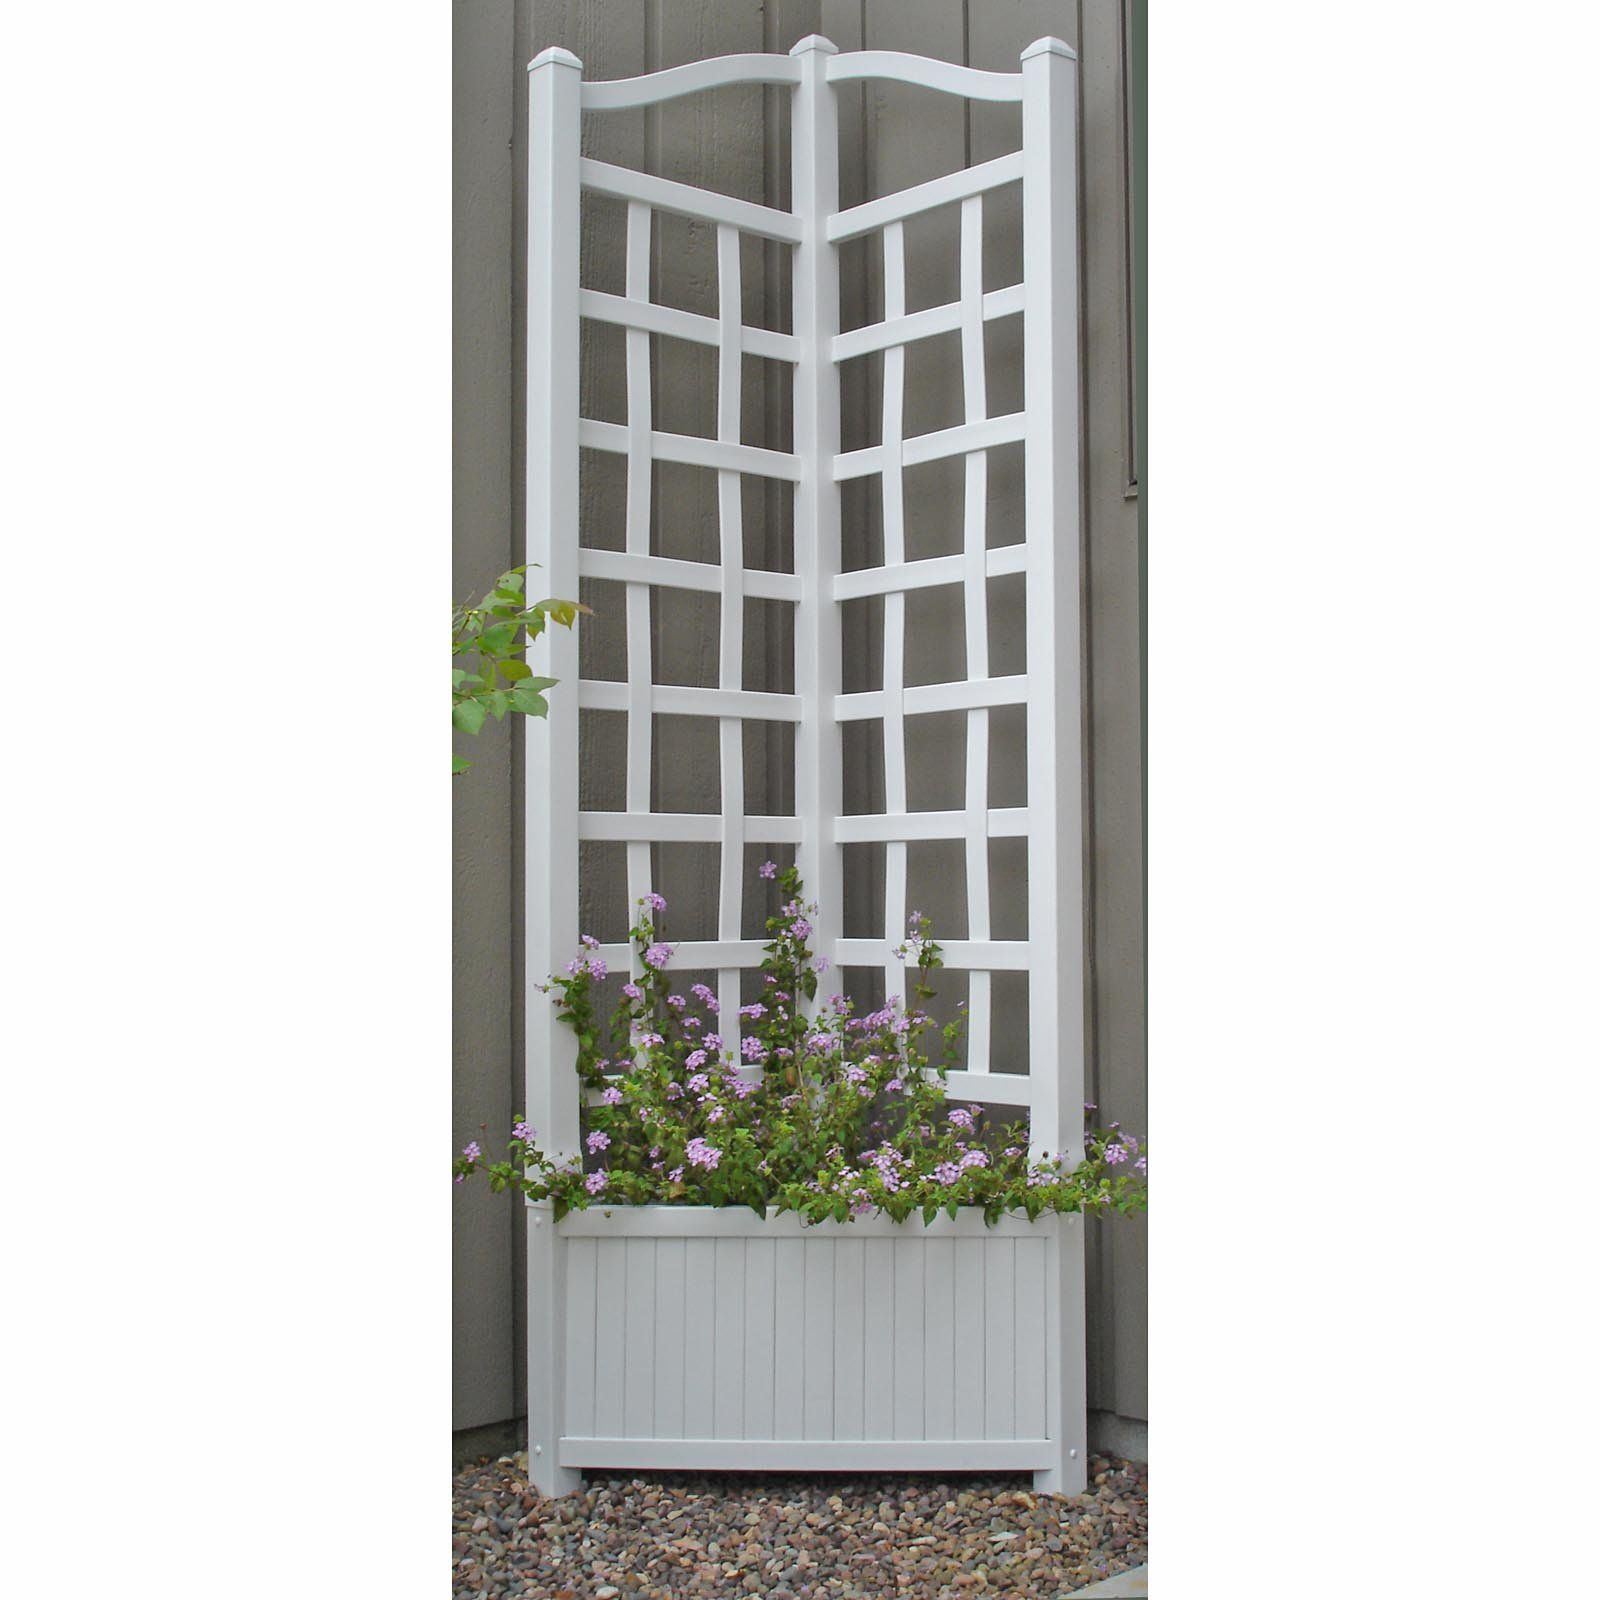 Wooden Planter With Trellis... Great Idea For Patio Corner Post!